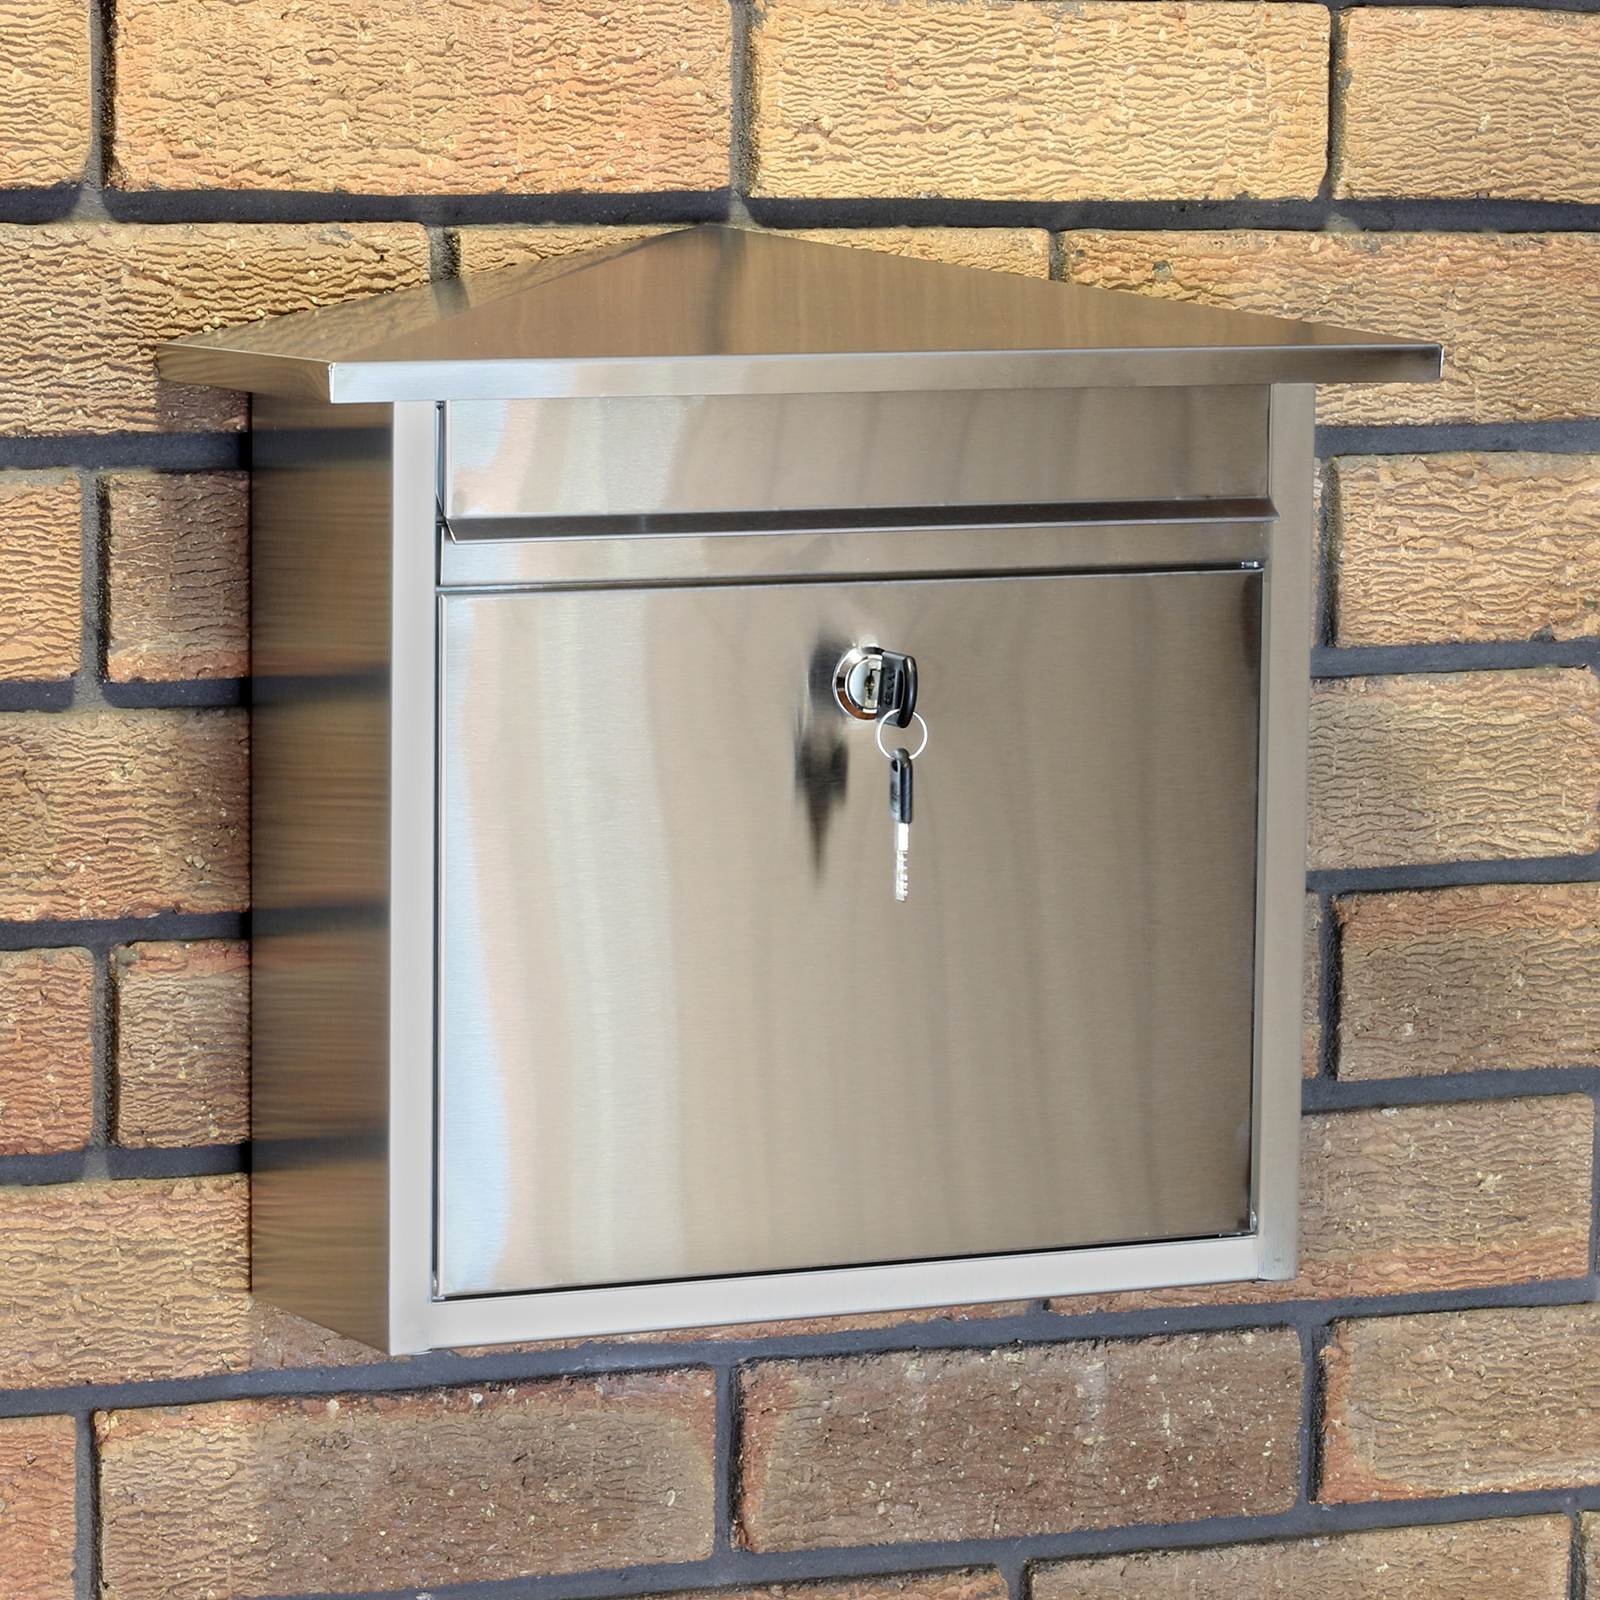 Stainless Steel Lockable Mailbox Postbox Outdoor Home Mail